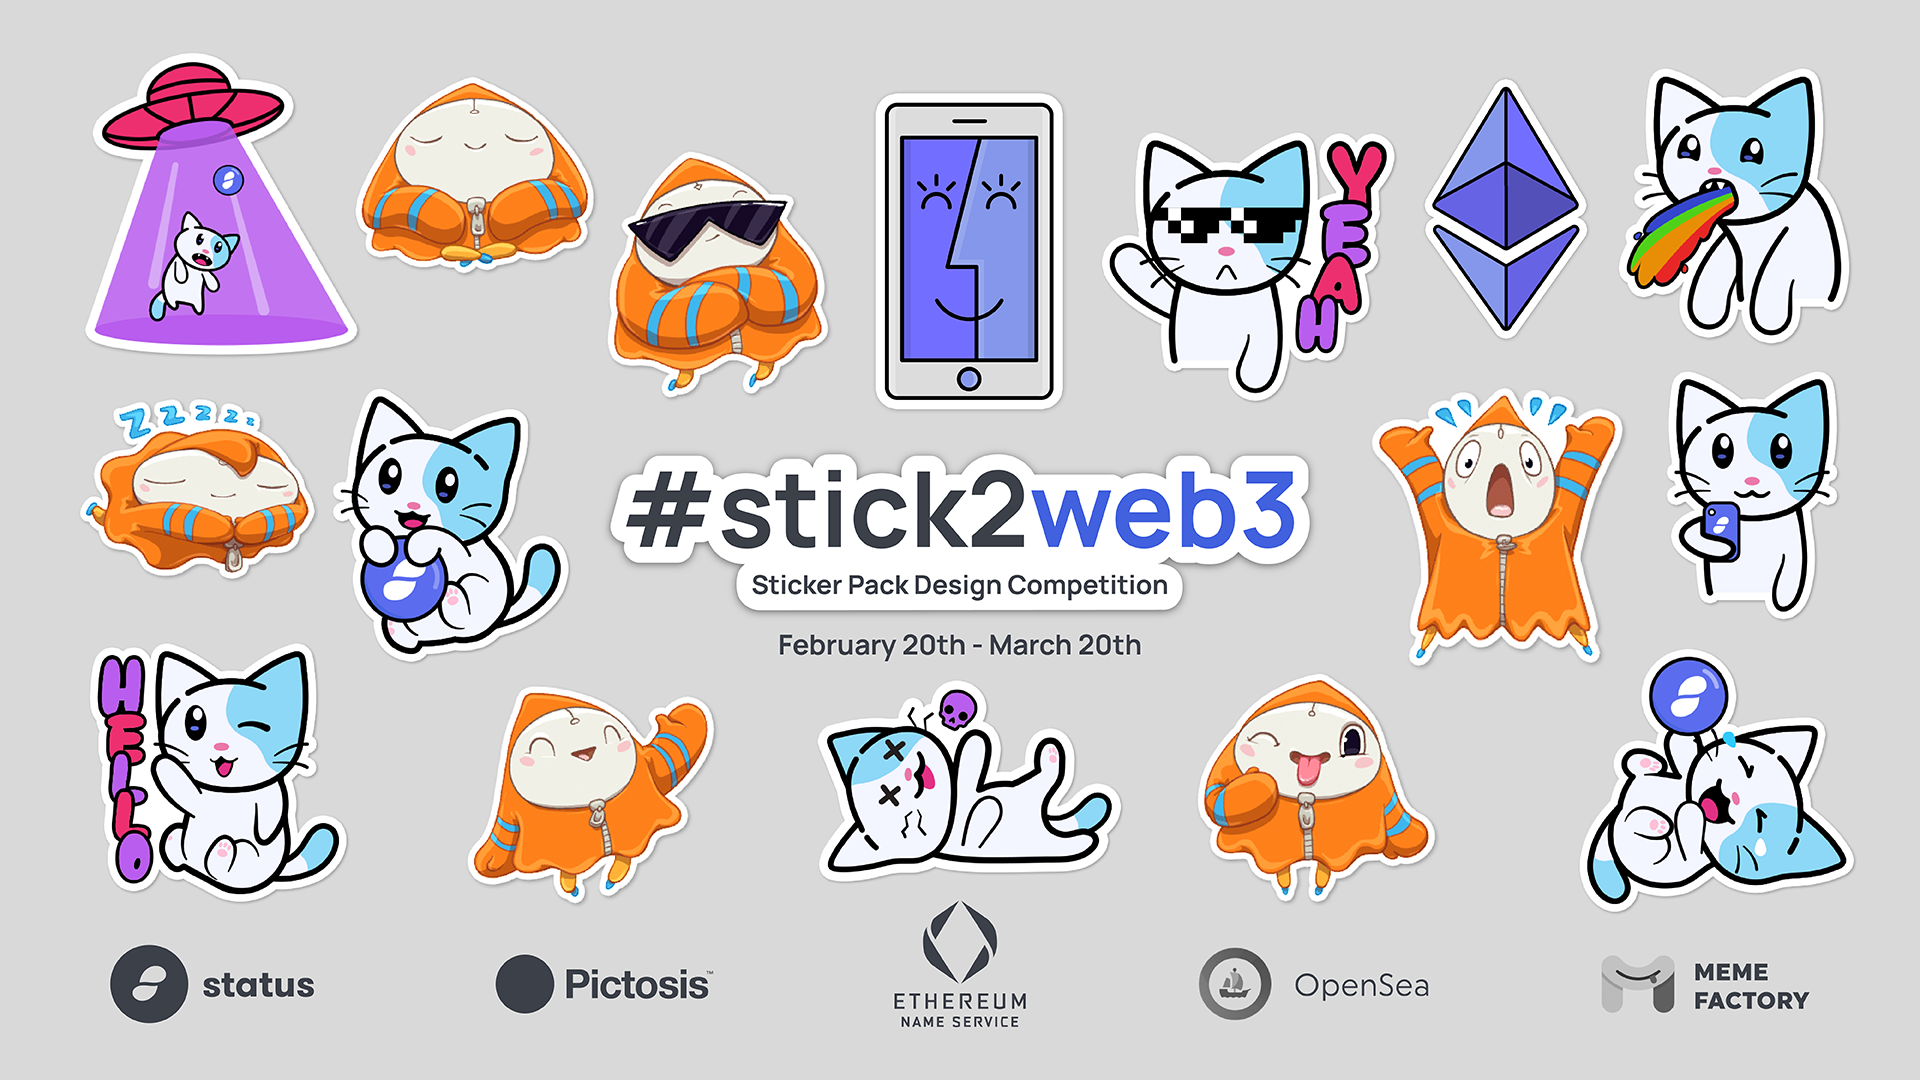 #stick2web3 Sticker Design Competition - We have a winner!